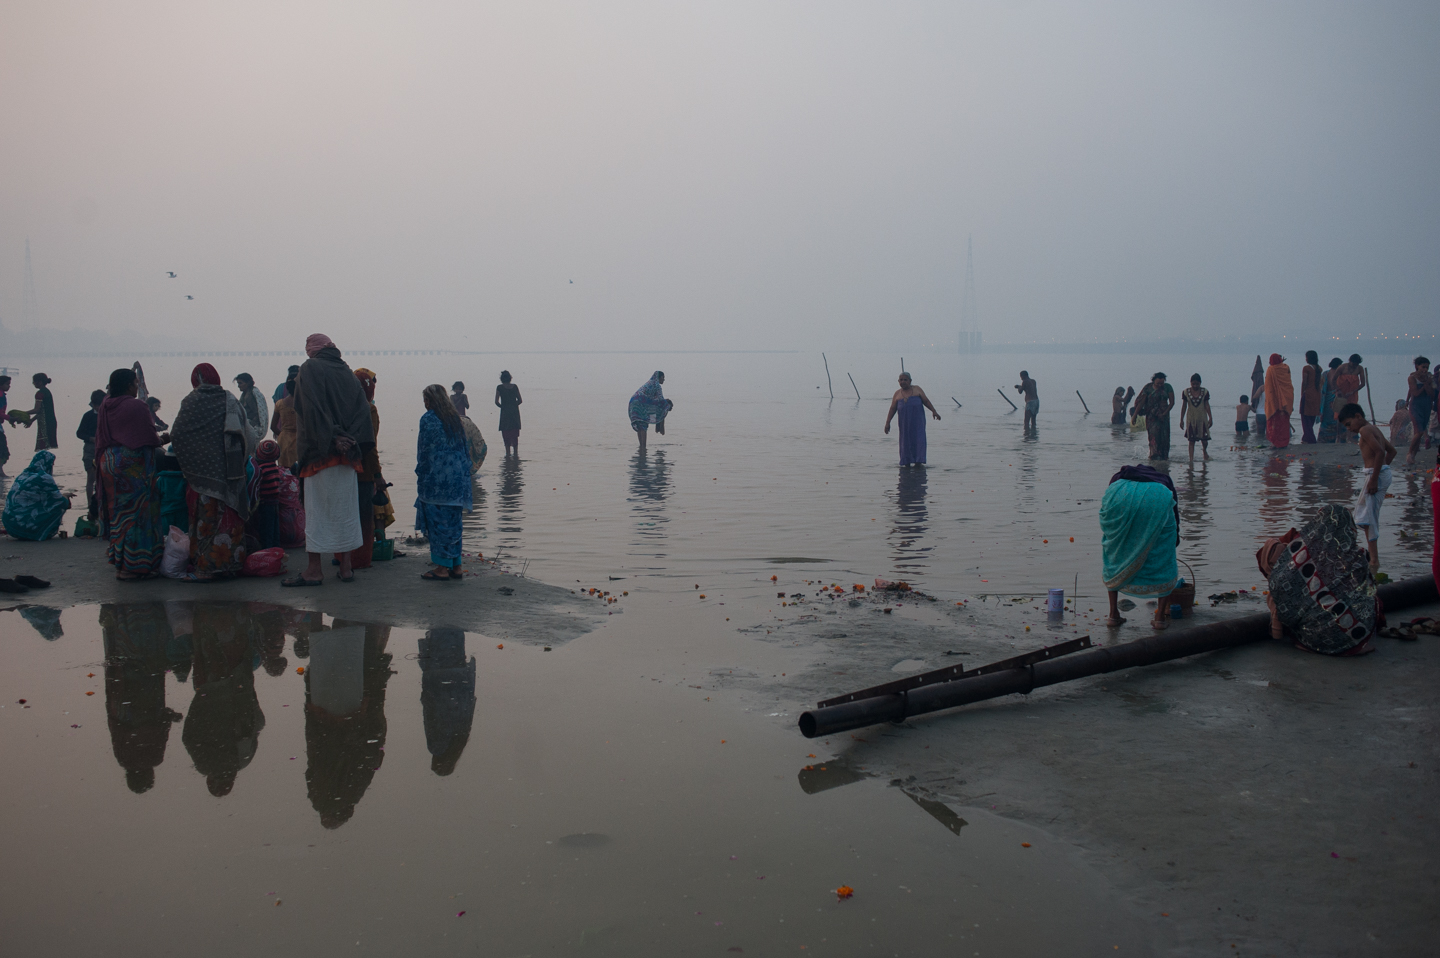 Pilgrims bathing, early morning